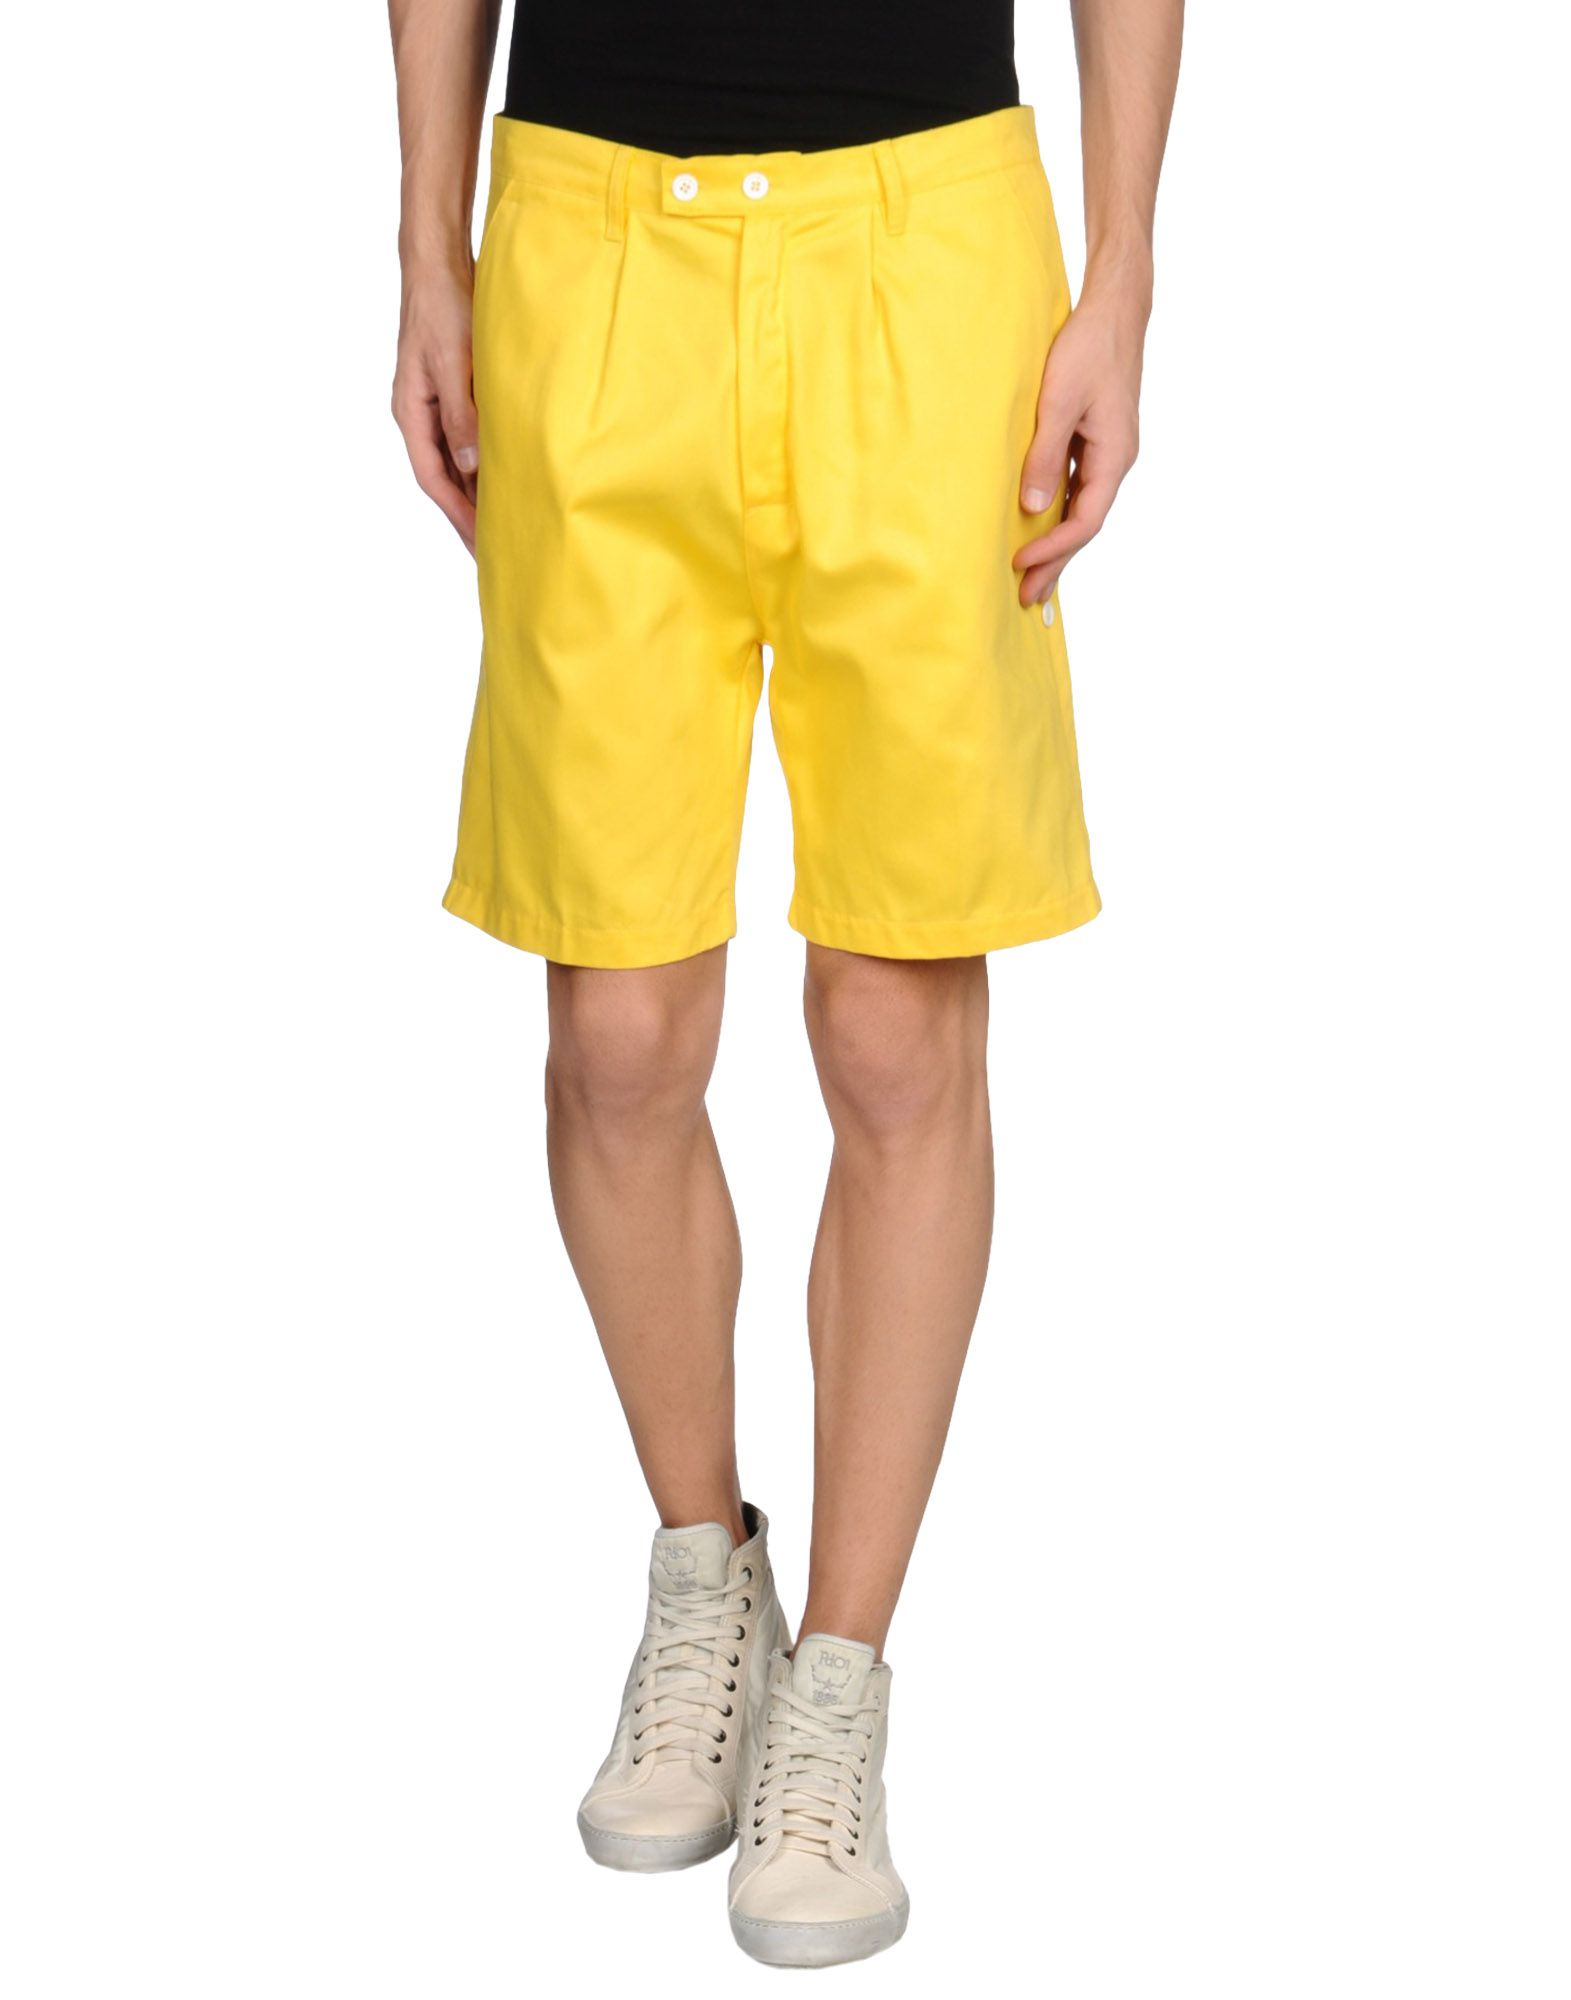 Find great deals on eBay for yellow camo shorts. Shop with confidence.